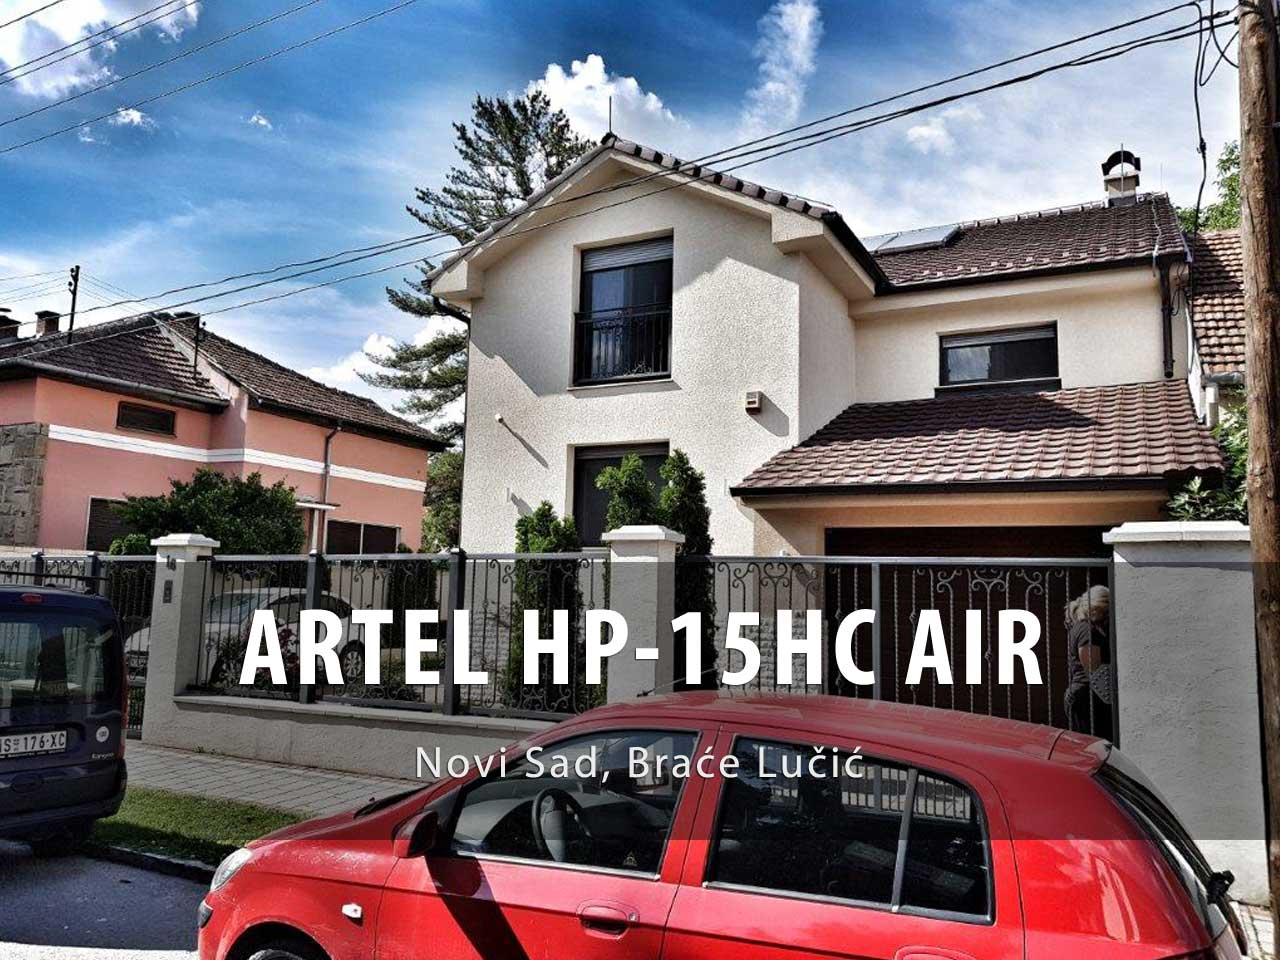 artel-hp-15hc-air